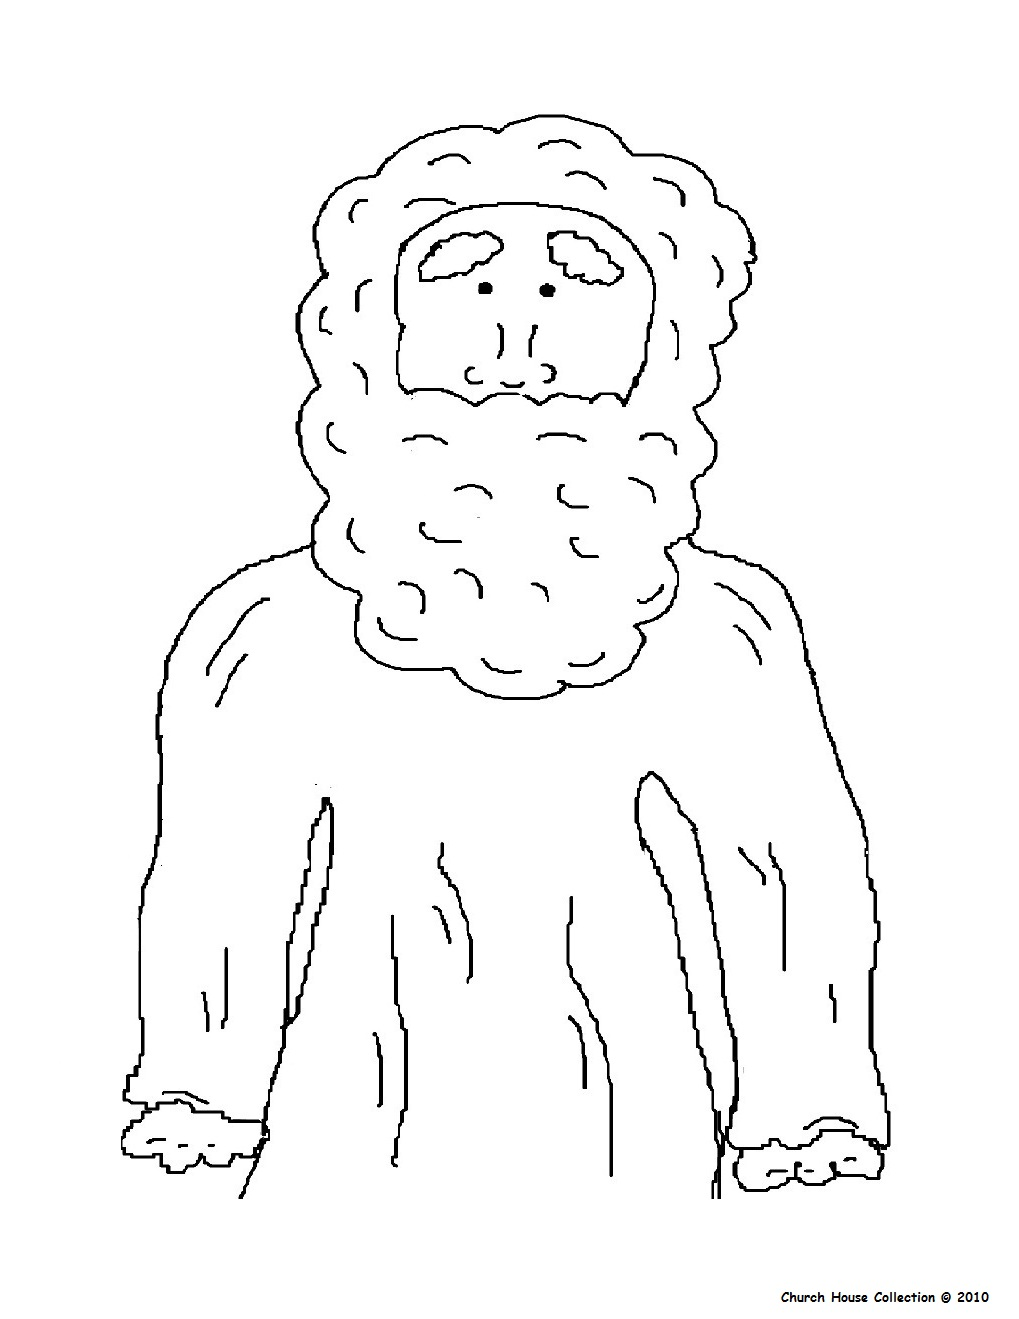 colouring page of abraham no words at httpwwwchurchhousecollectioncomresourcesabraham20no20name20coloring20pagejpg